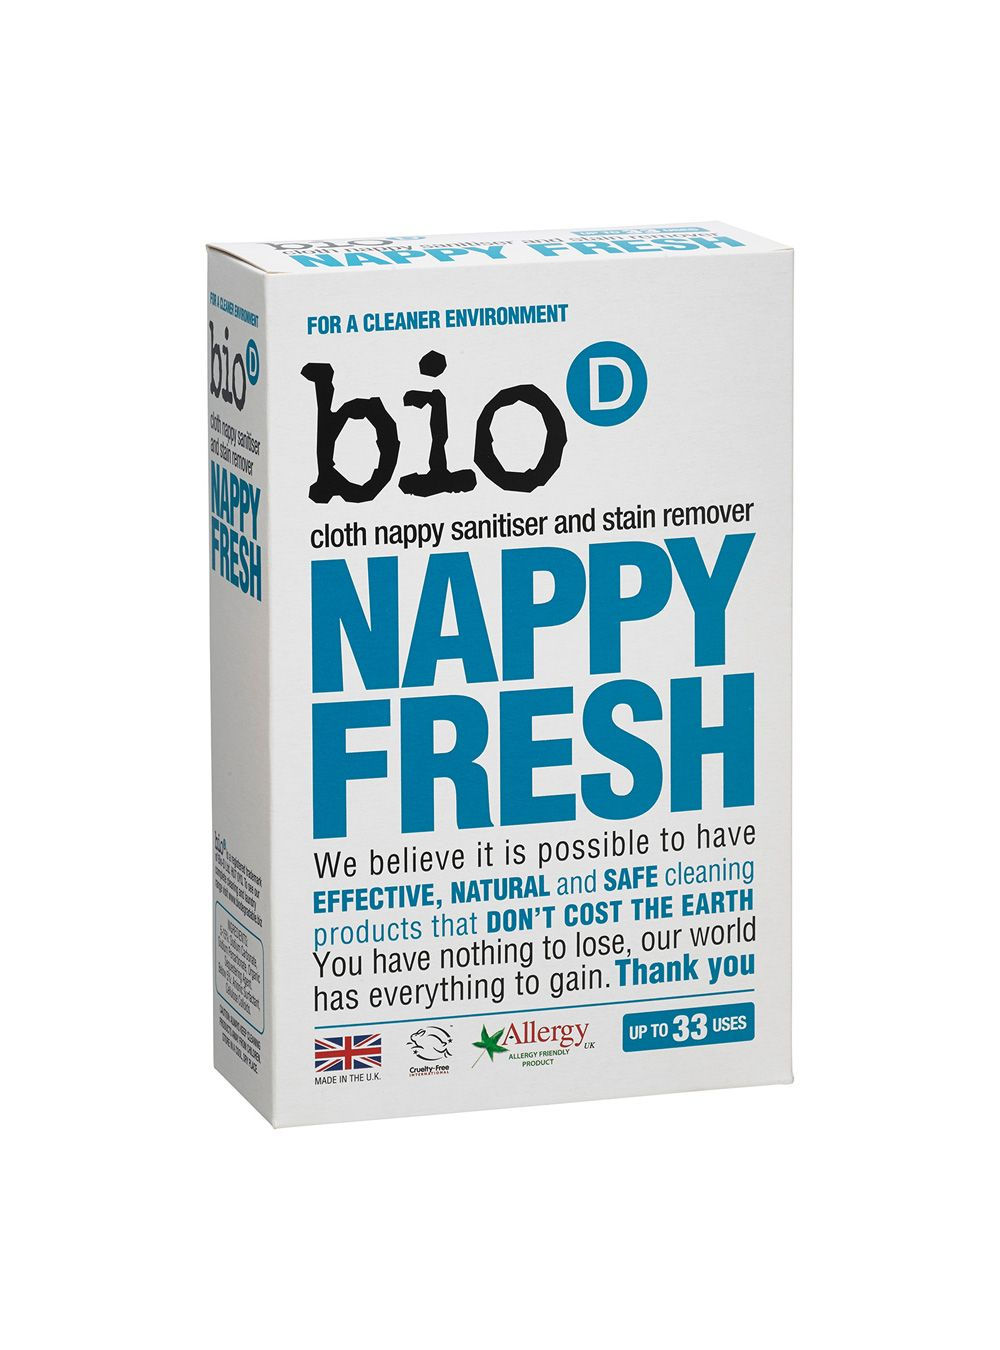 BioD Nappy Fresh Safe cleaning products, Nappy